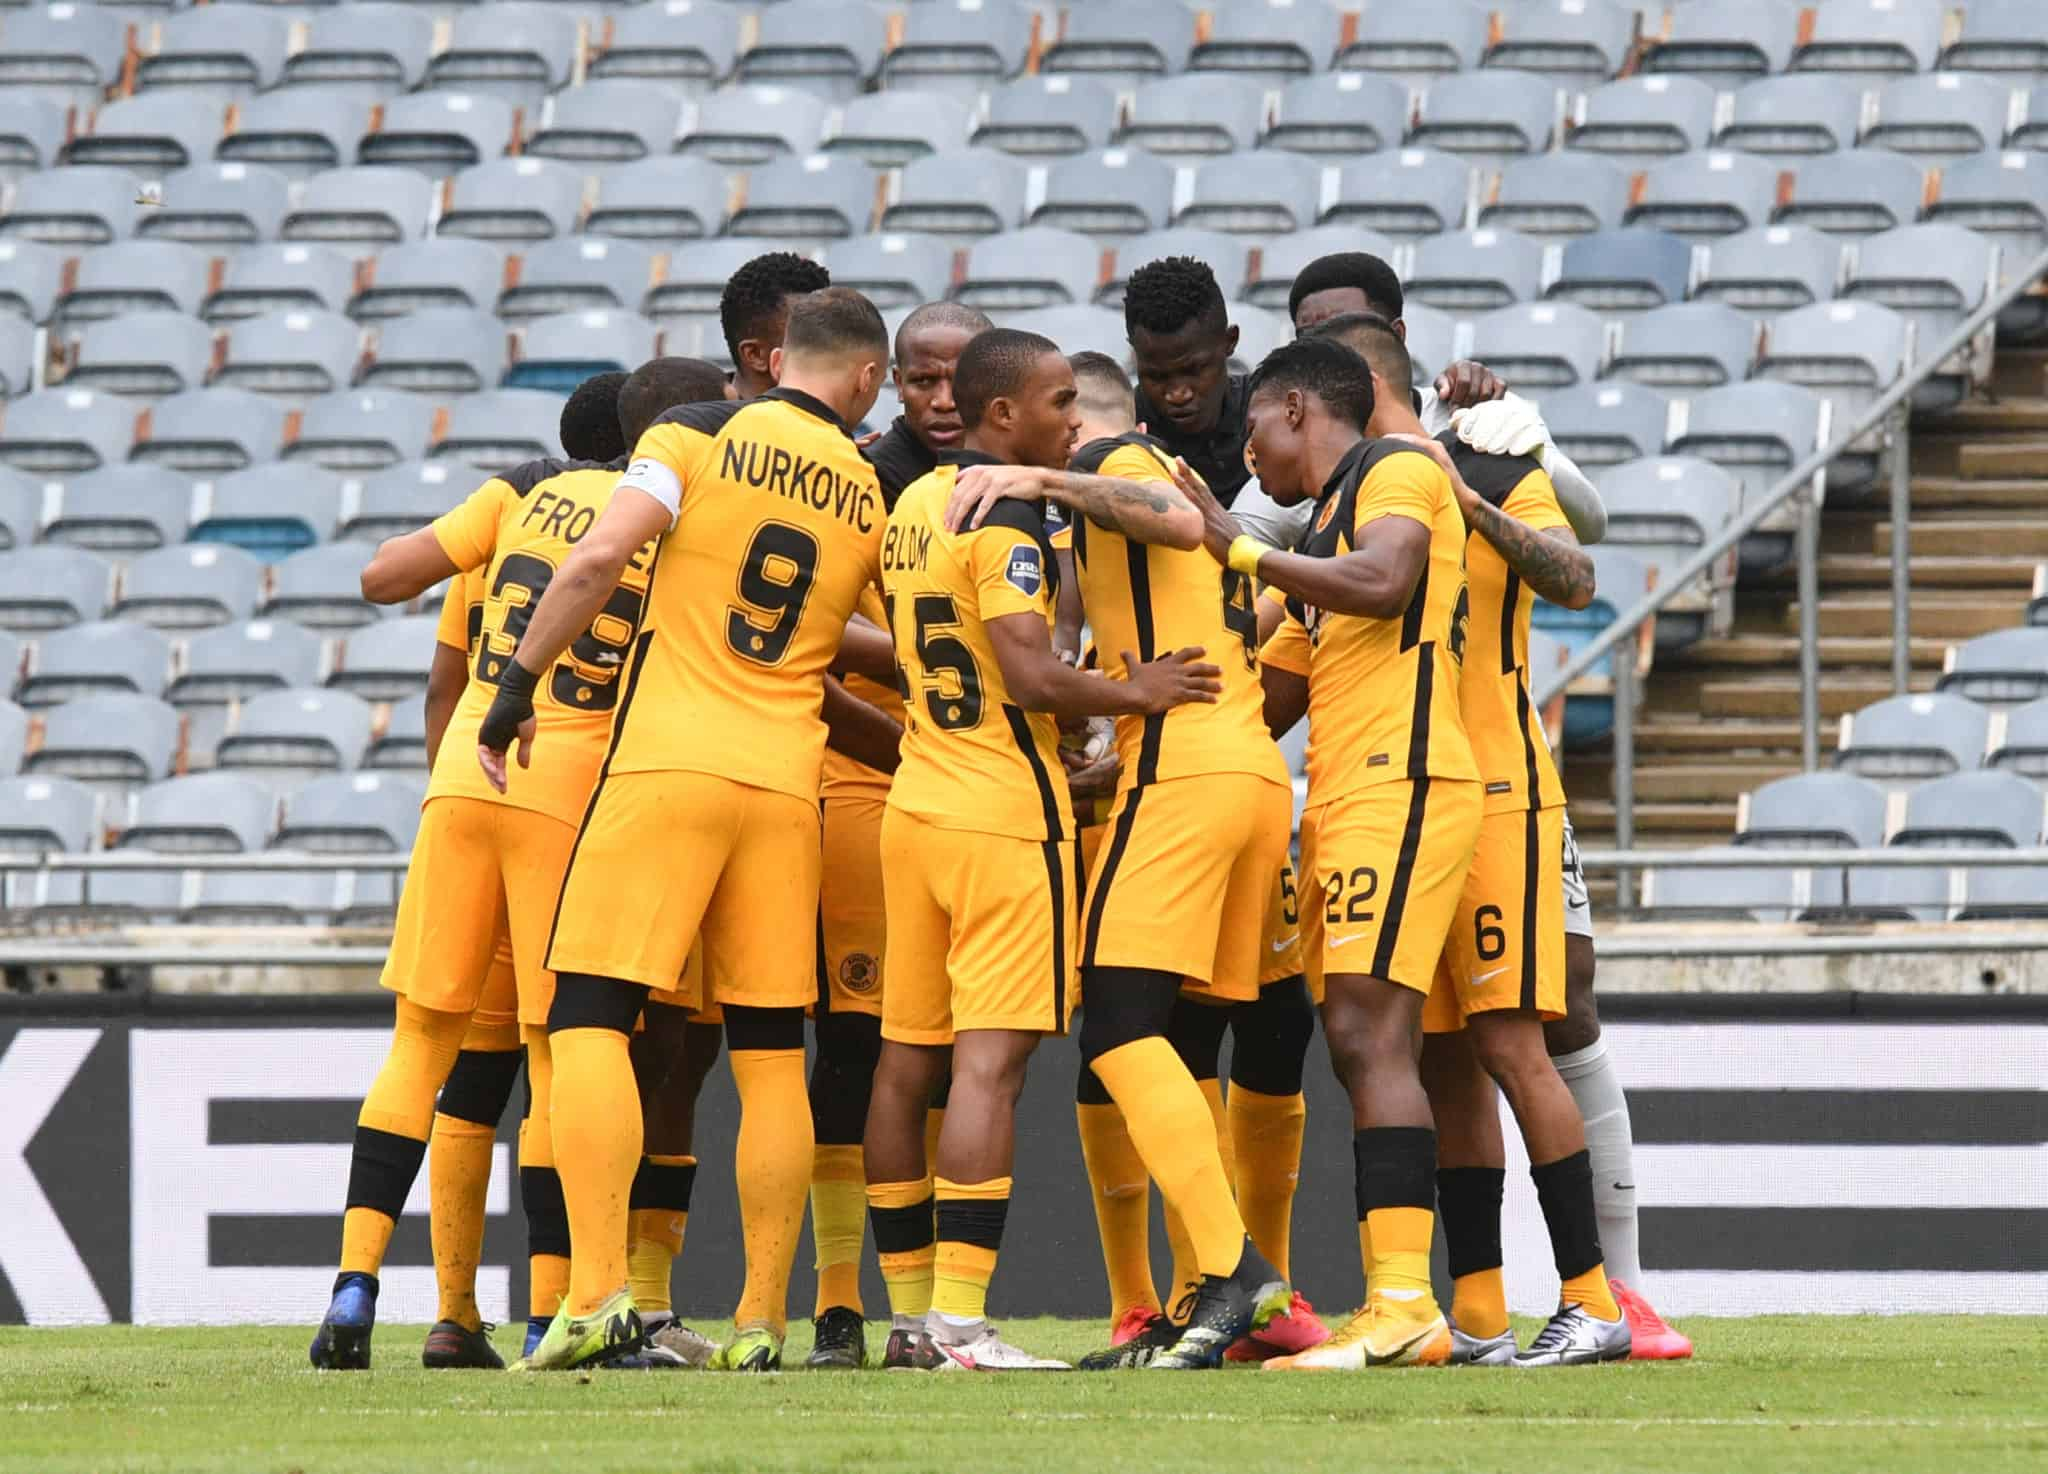 Kaizer Chiefs 2 2048x1474 - Is Gavin Hunt to blame for Kaizer Chiefs' struggles?